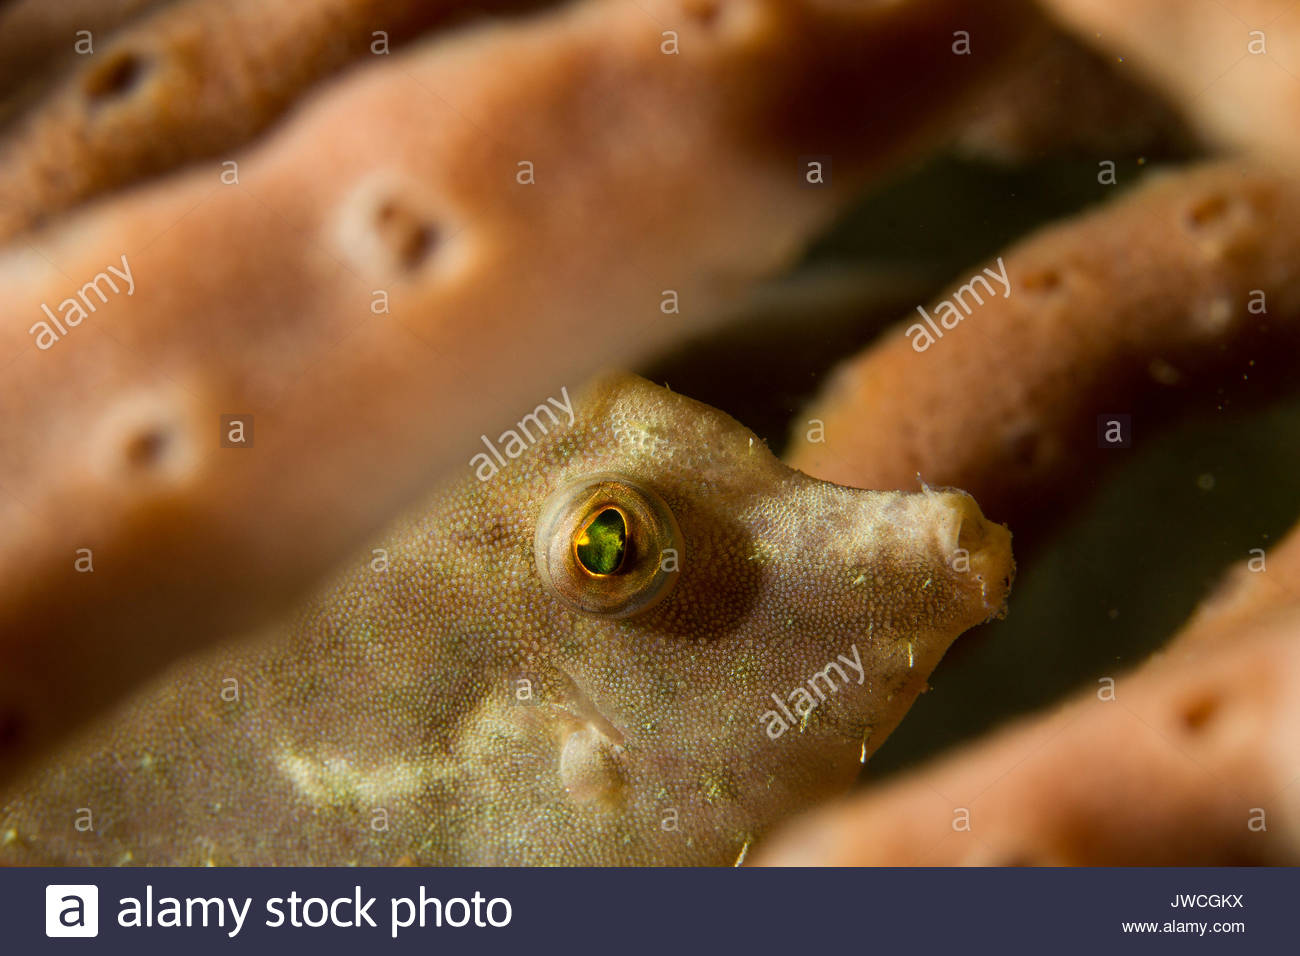 Filefish among sponges. - Stock Image